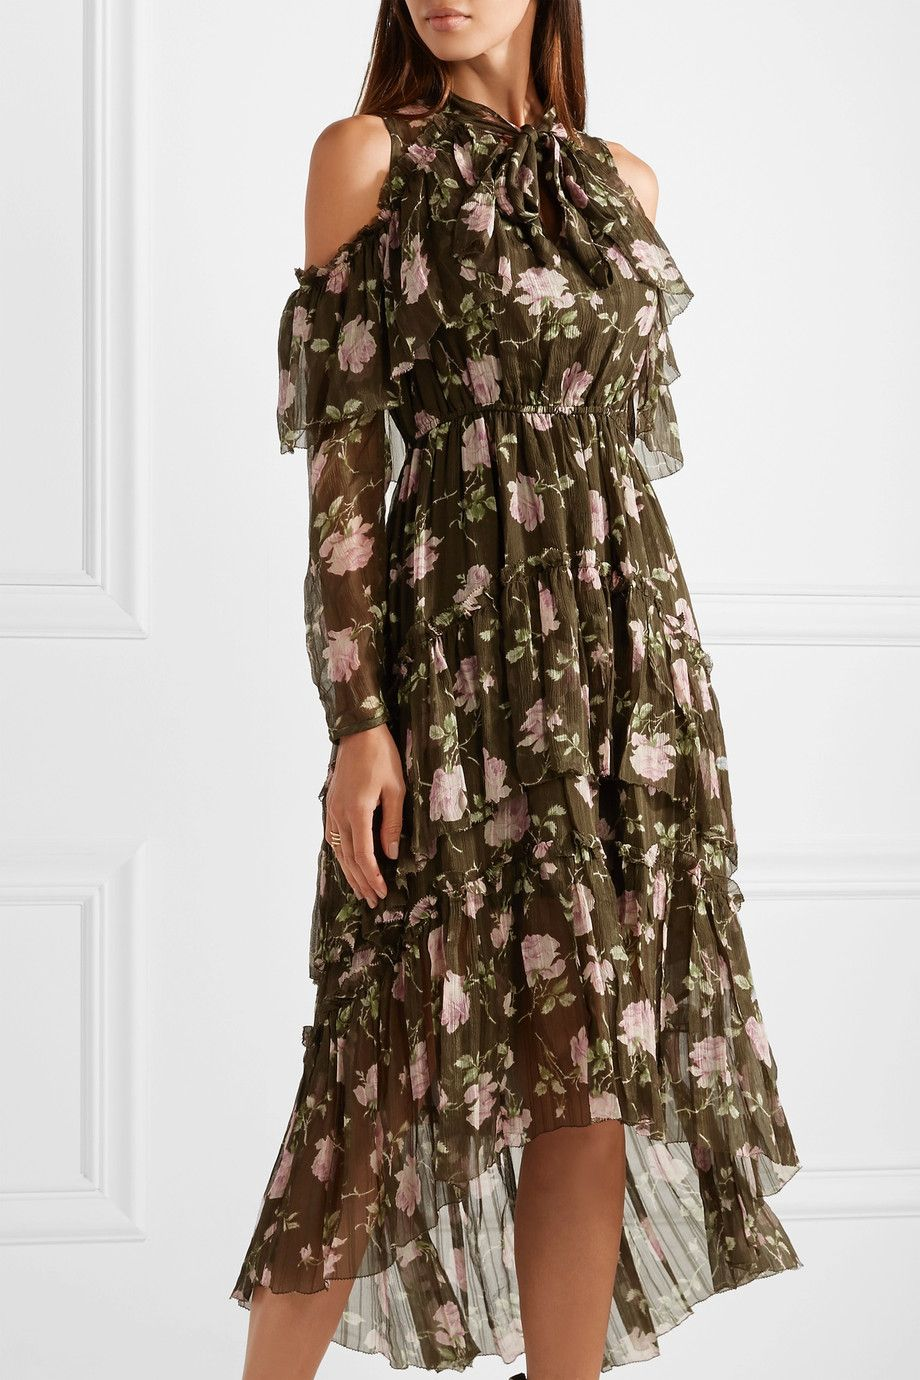 100% Original Cheap Online Marion Cold-shoulder Floral-print Crinkled Silk-chiffon Dress - Army green Ulla Johnson Outlet Exclusive 4U6Pq7